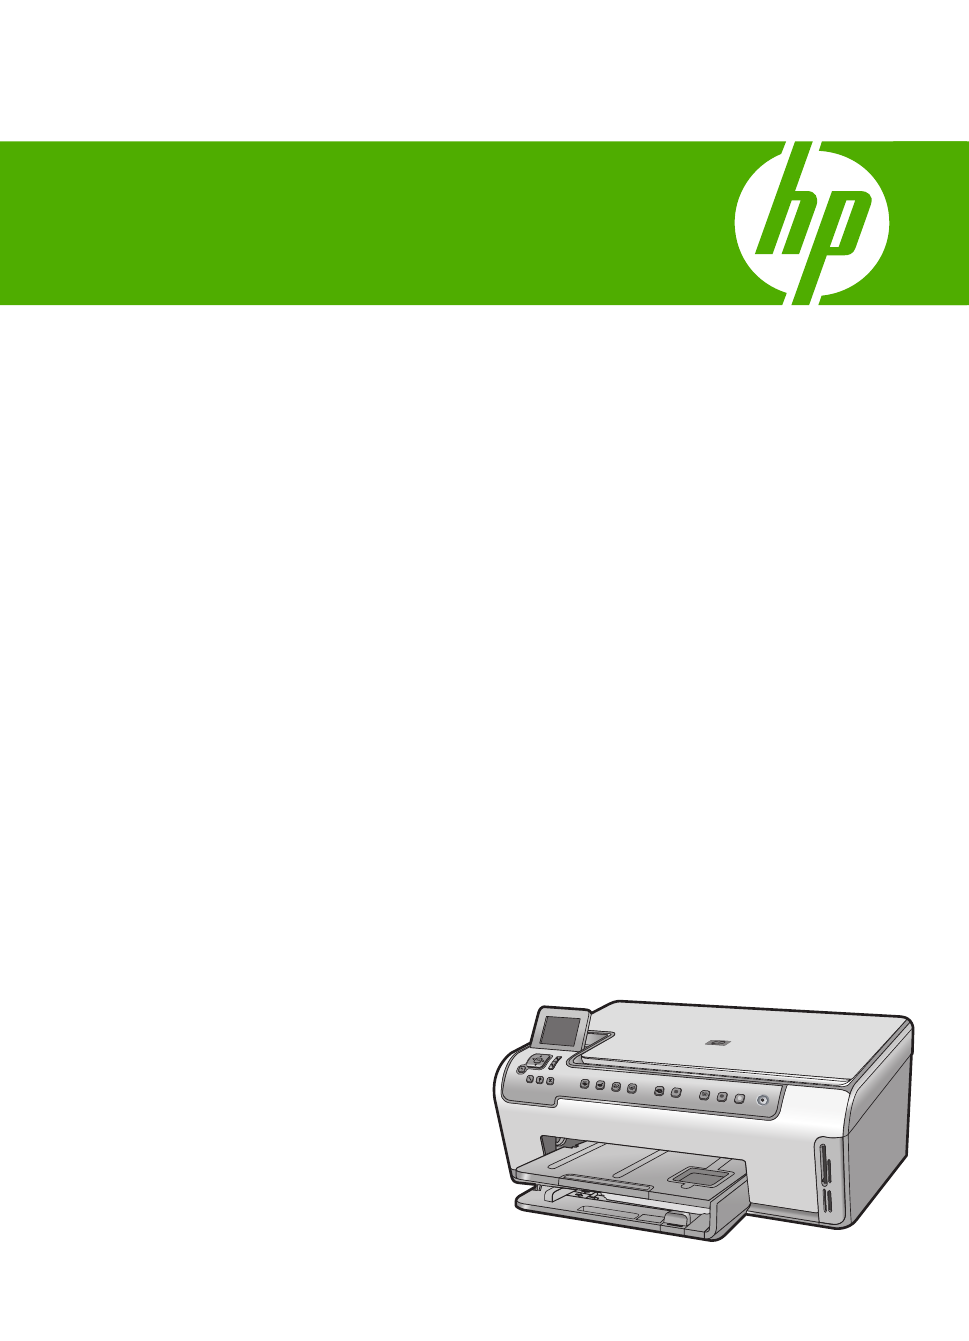 hp photosmart c6280 all in one printer user s manual free pdf rh manualagent com C6280 HP Error 0Xc18a0206 HP C6280 Printer Problems